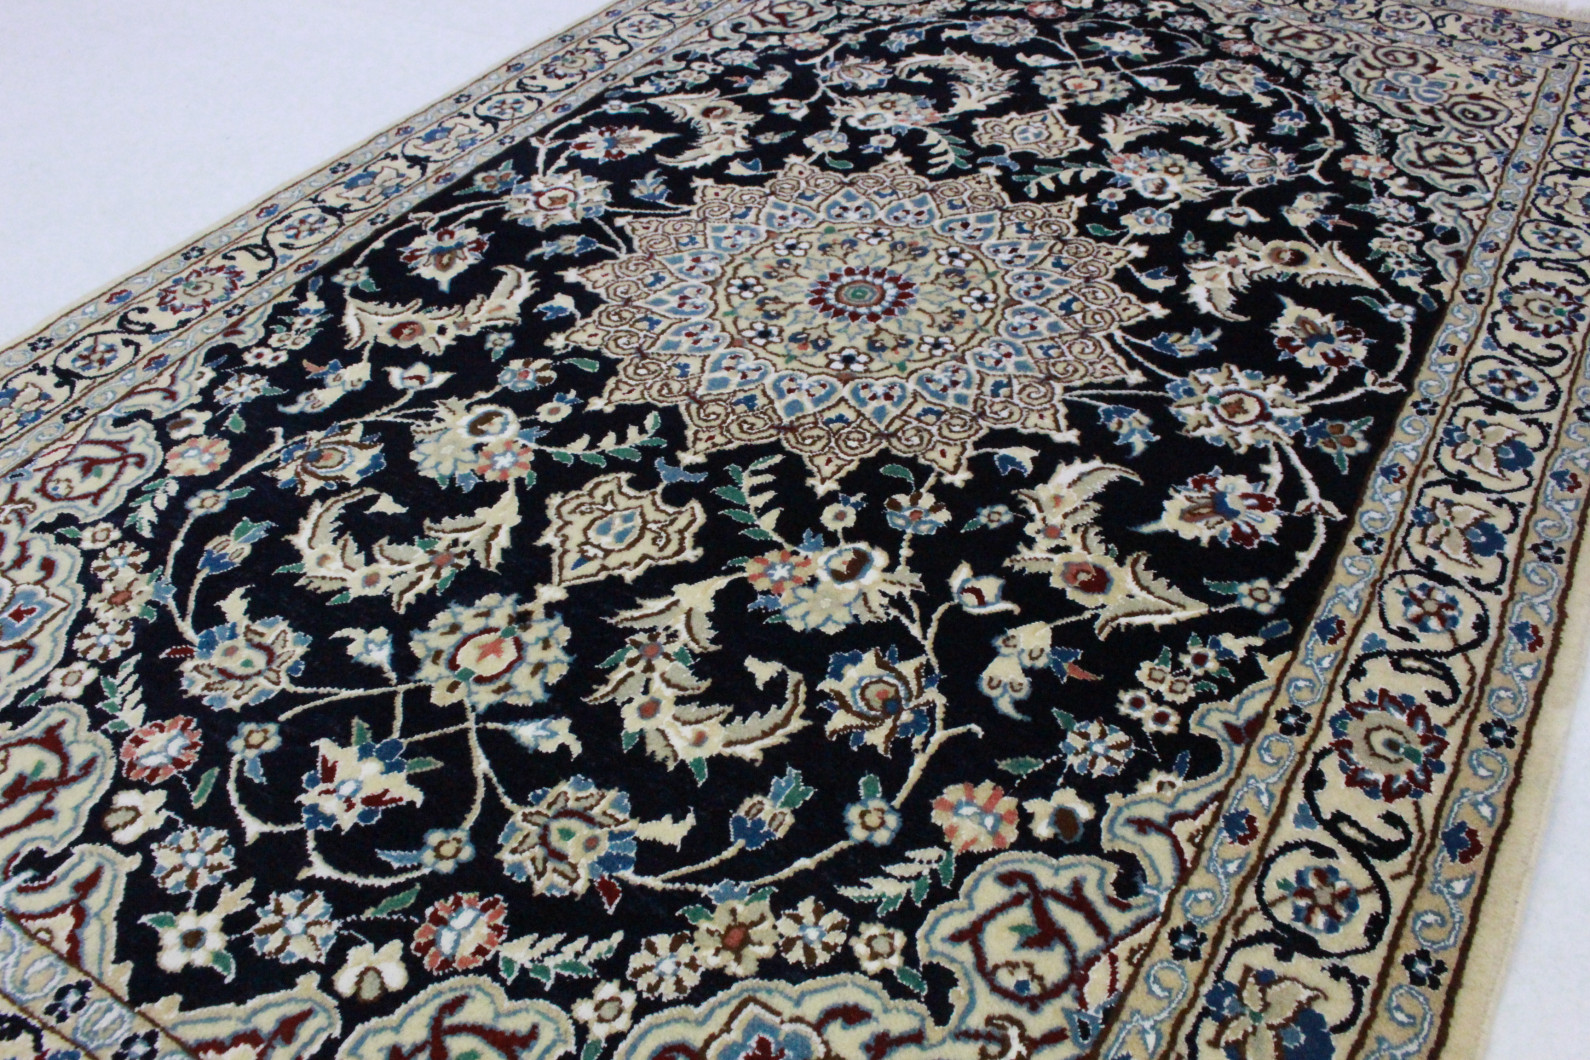 nain teppich beige blau in 180x120 5120 25998 bei kaufen. Black Bedroom Furniture Sets. Home Design Ideas